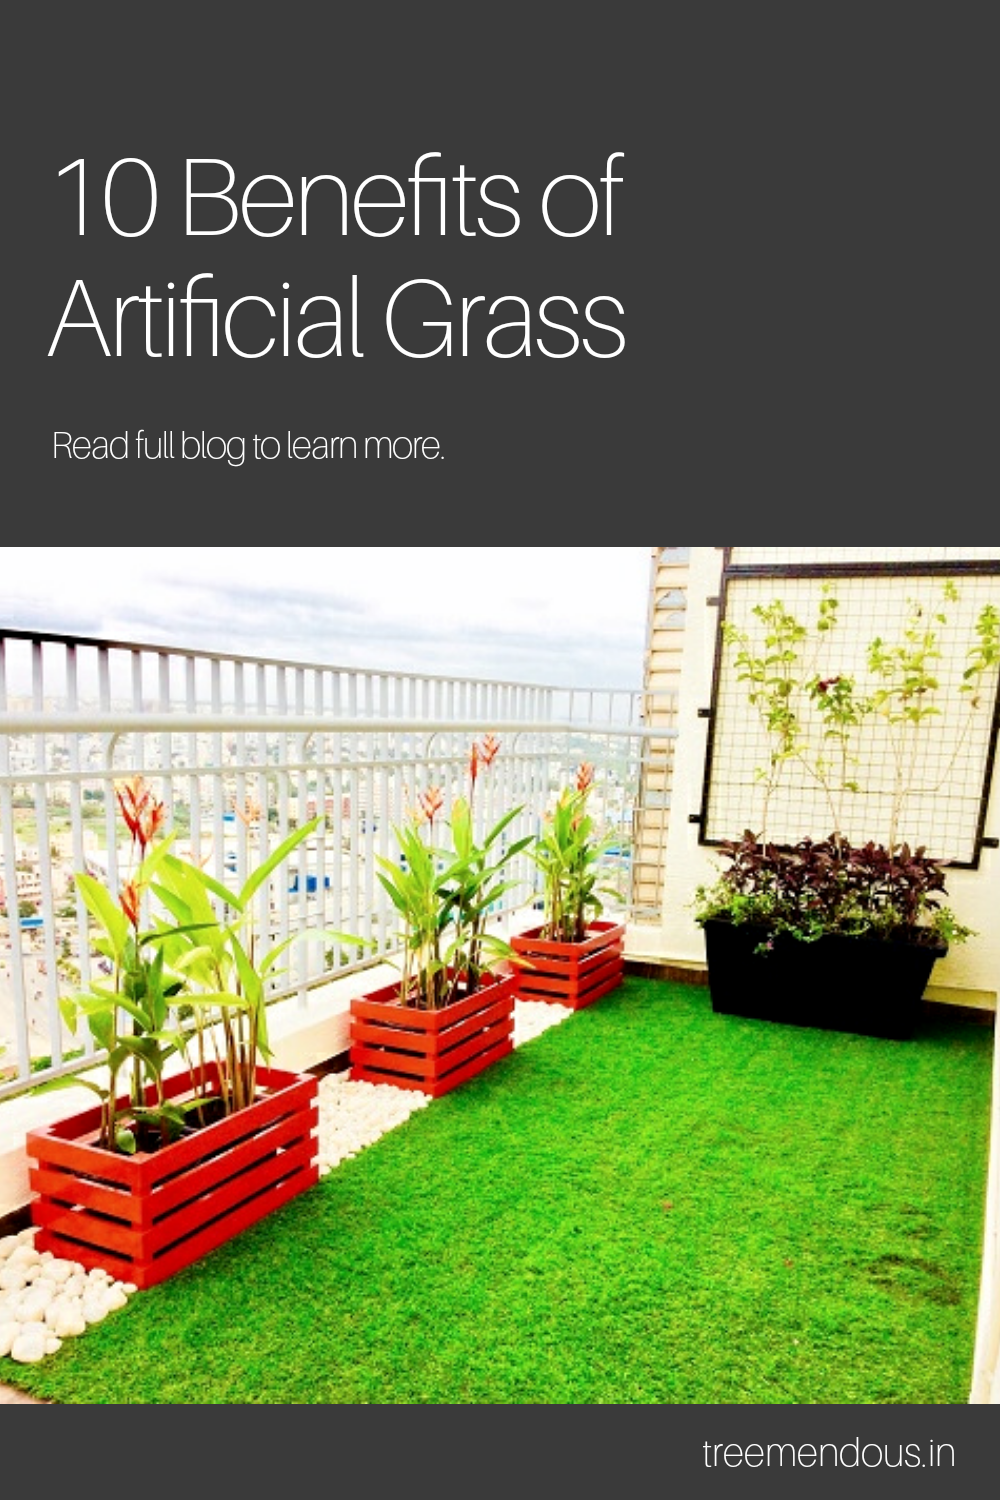 Artificial grass benefits , Artificial Turf , Artificial Grass